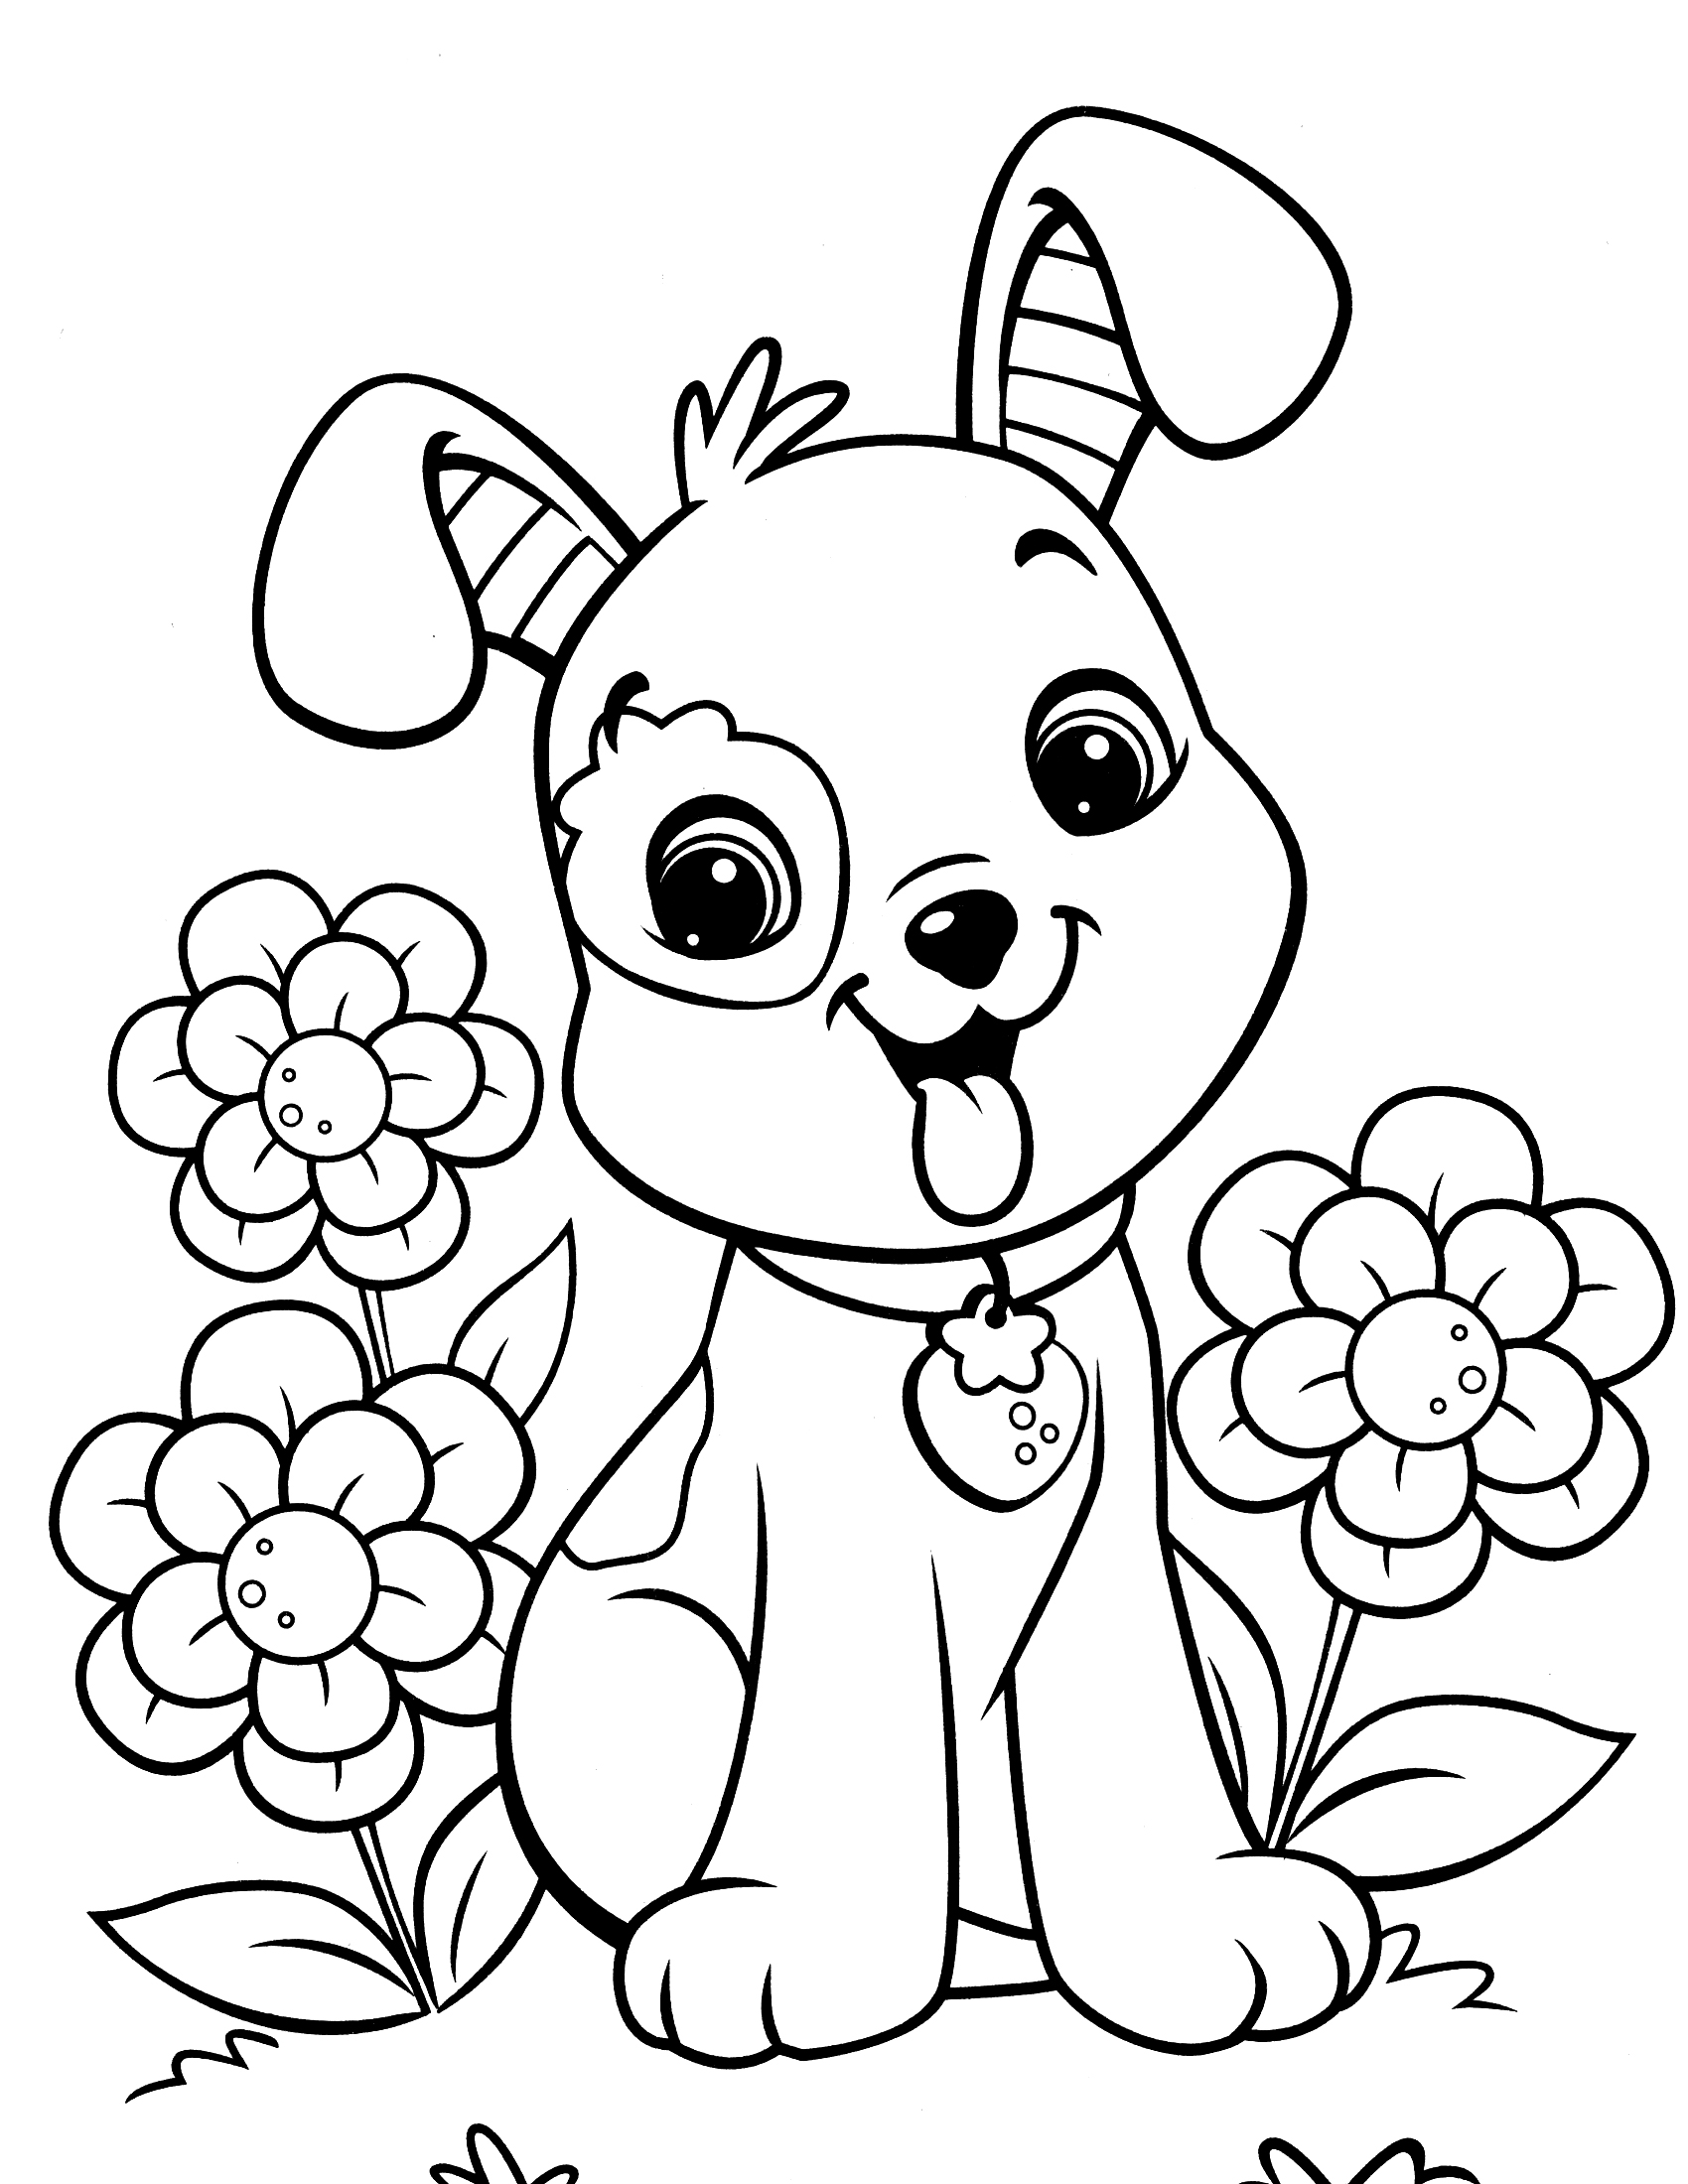 Puppy coloring pages best coloring pages for kids for Best coloring pages for kids